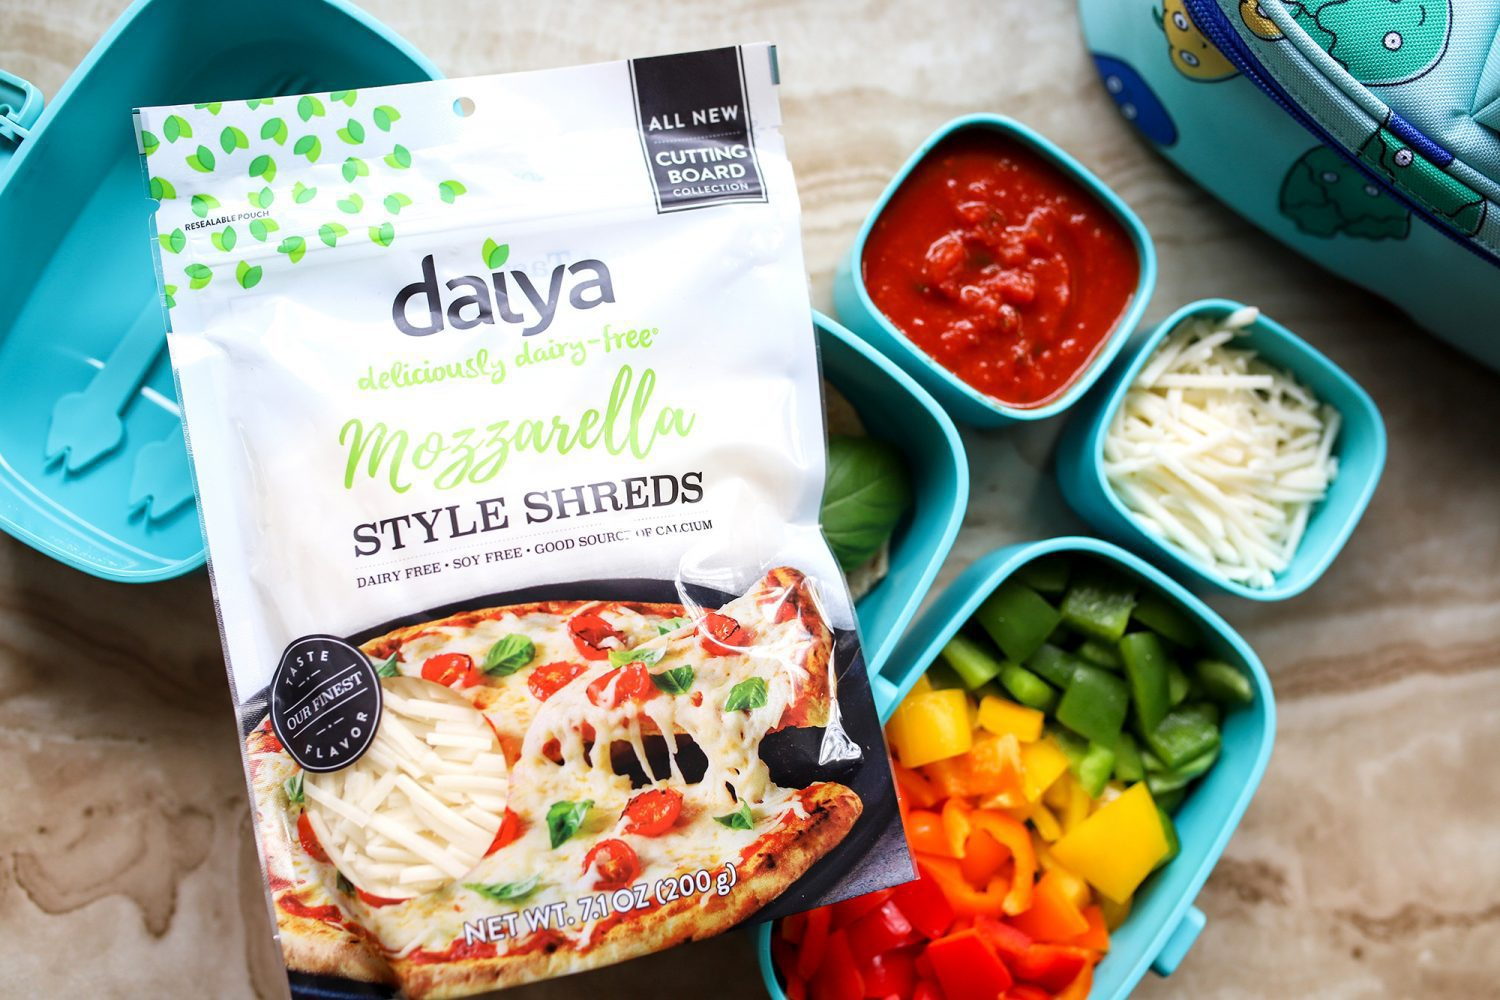 ingredients needed to make a dairy free pizza including daiya plant based cheese